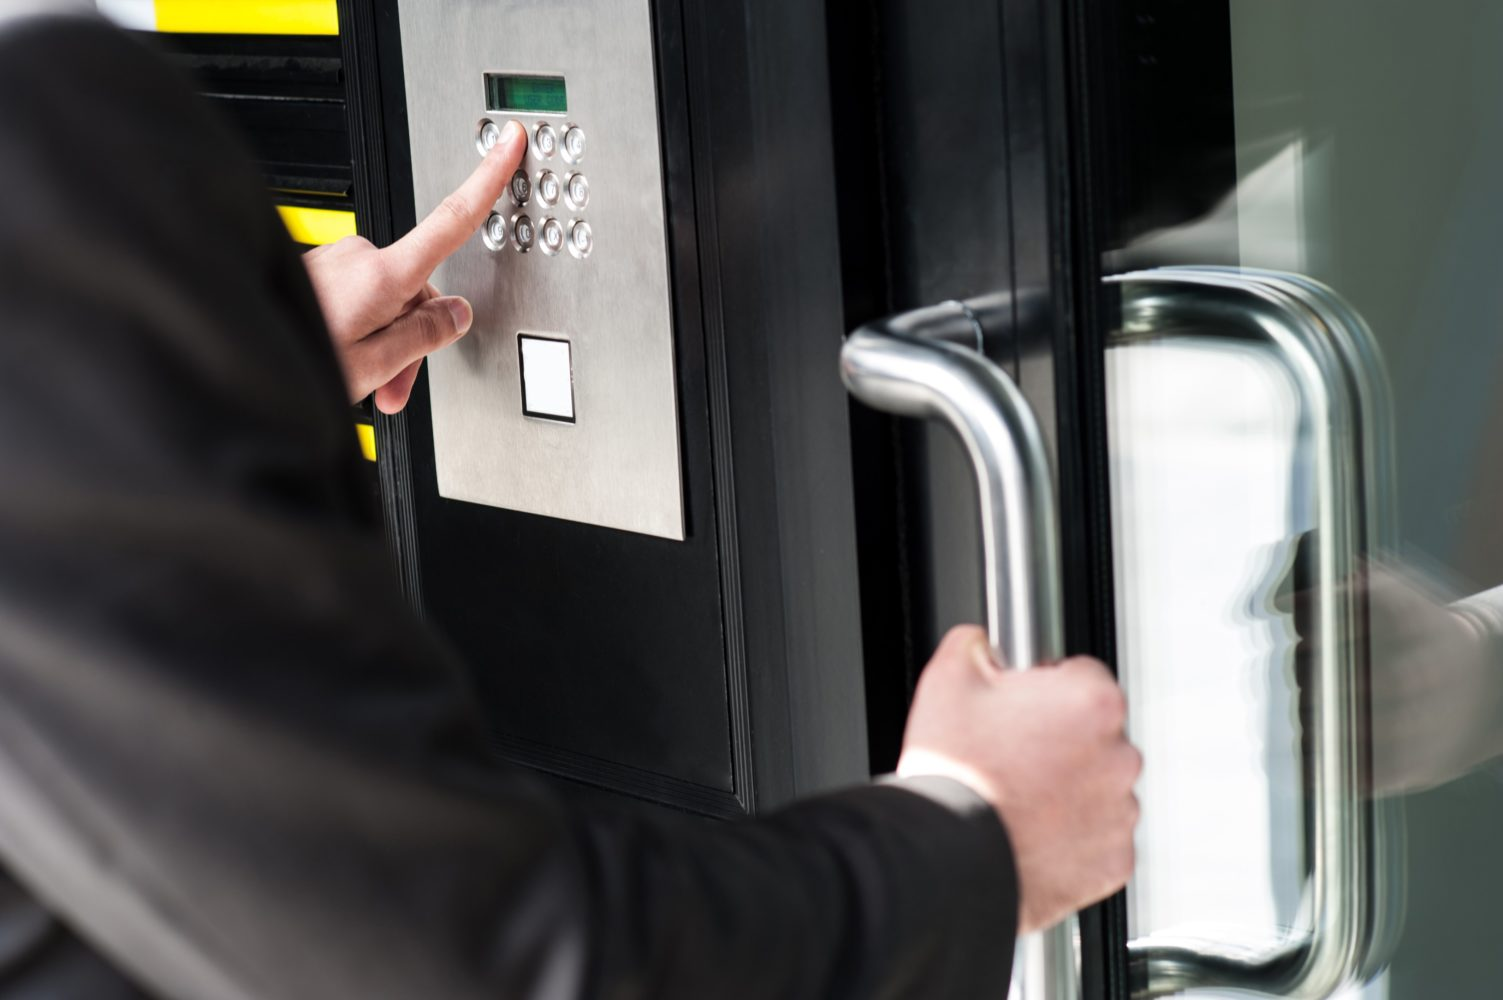 Le Meilleur Access Control Leads Growth In Physical Security Market Ce Mois Ci